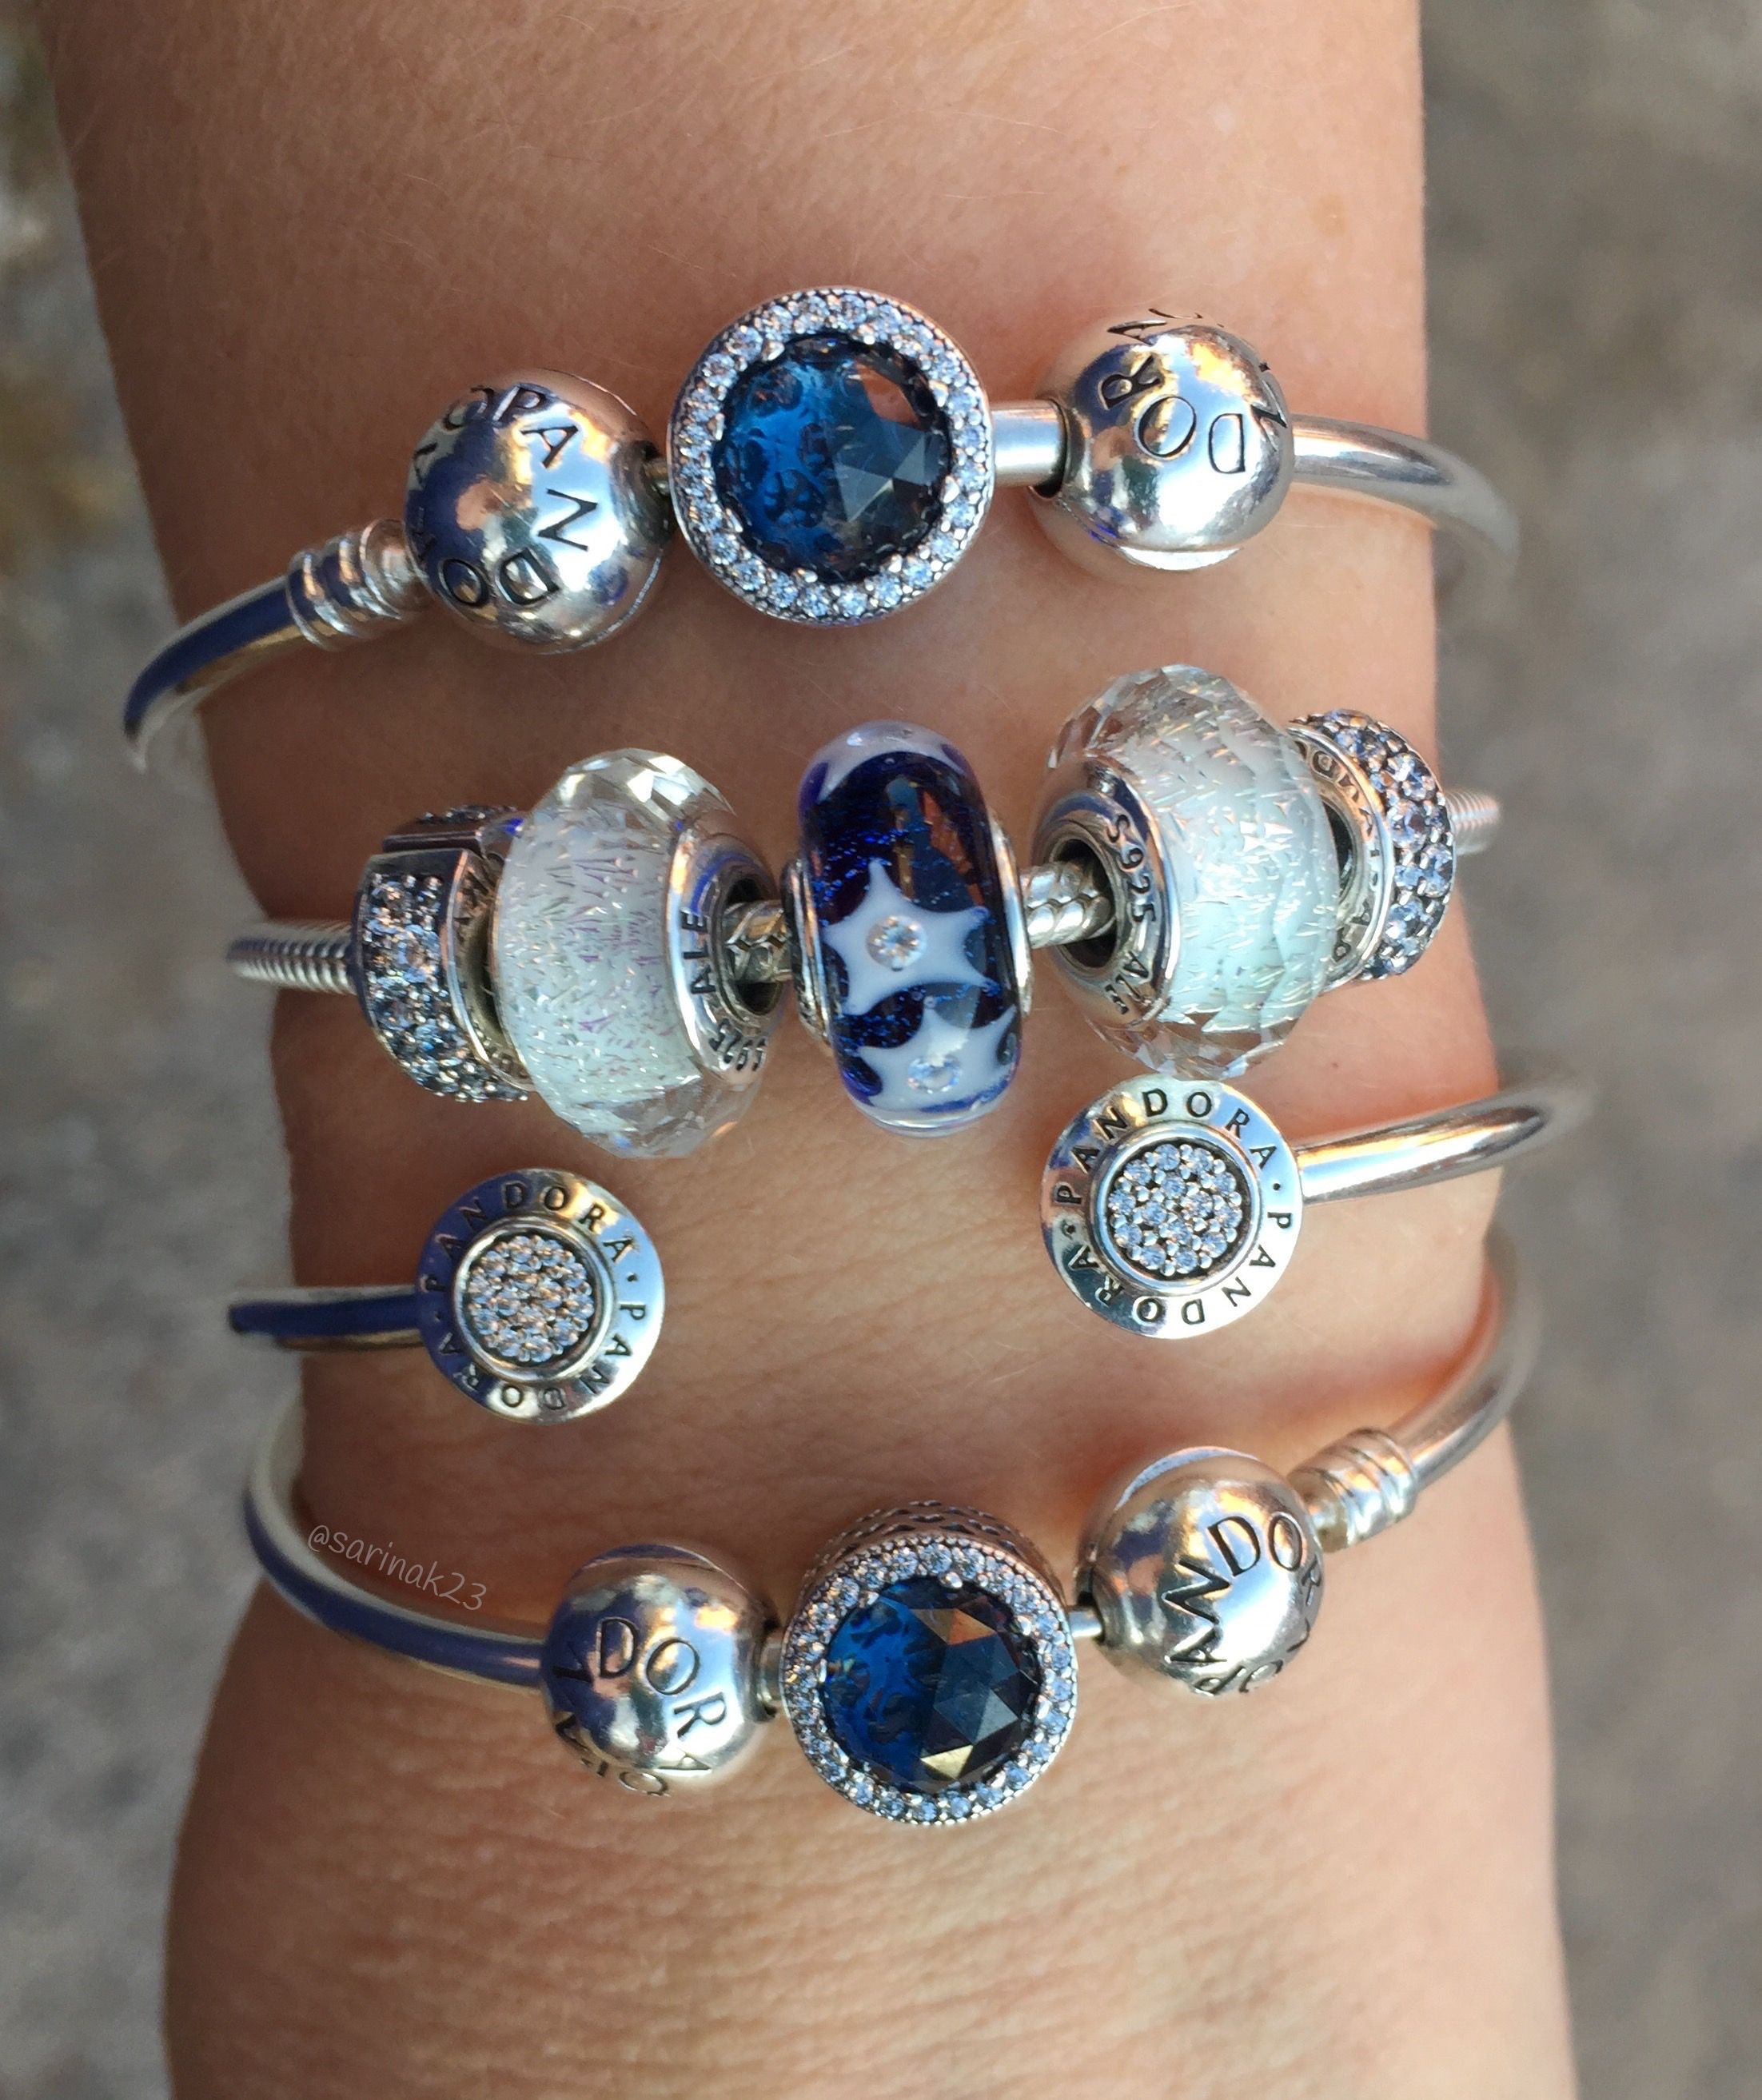 e4c7b18c1 The new Starry Night Murano Glass bead is one of my new favourites! Love  this Pandora Winter 2016 Collection❄️